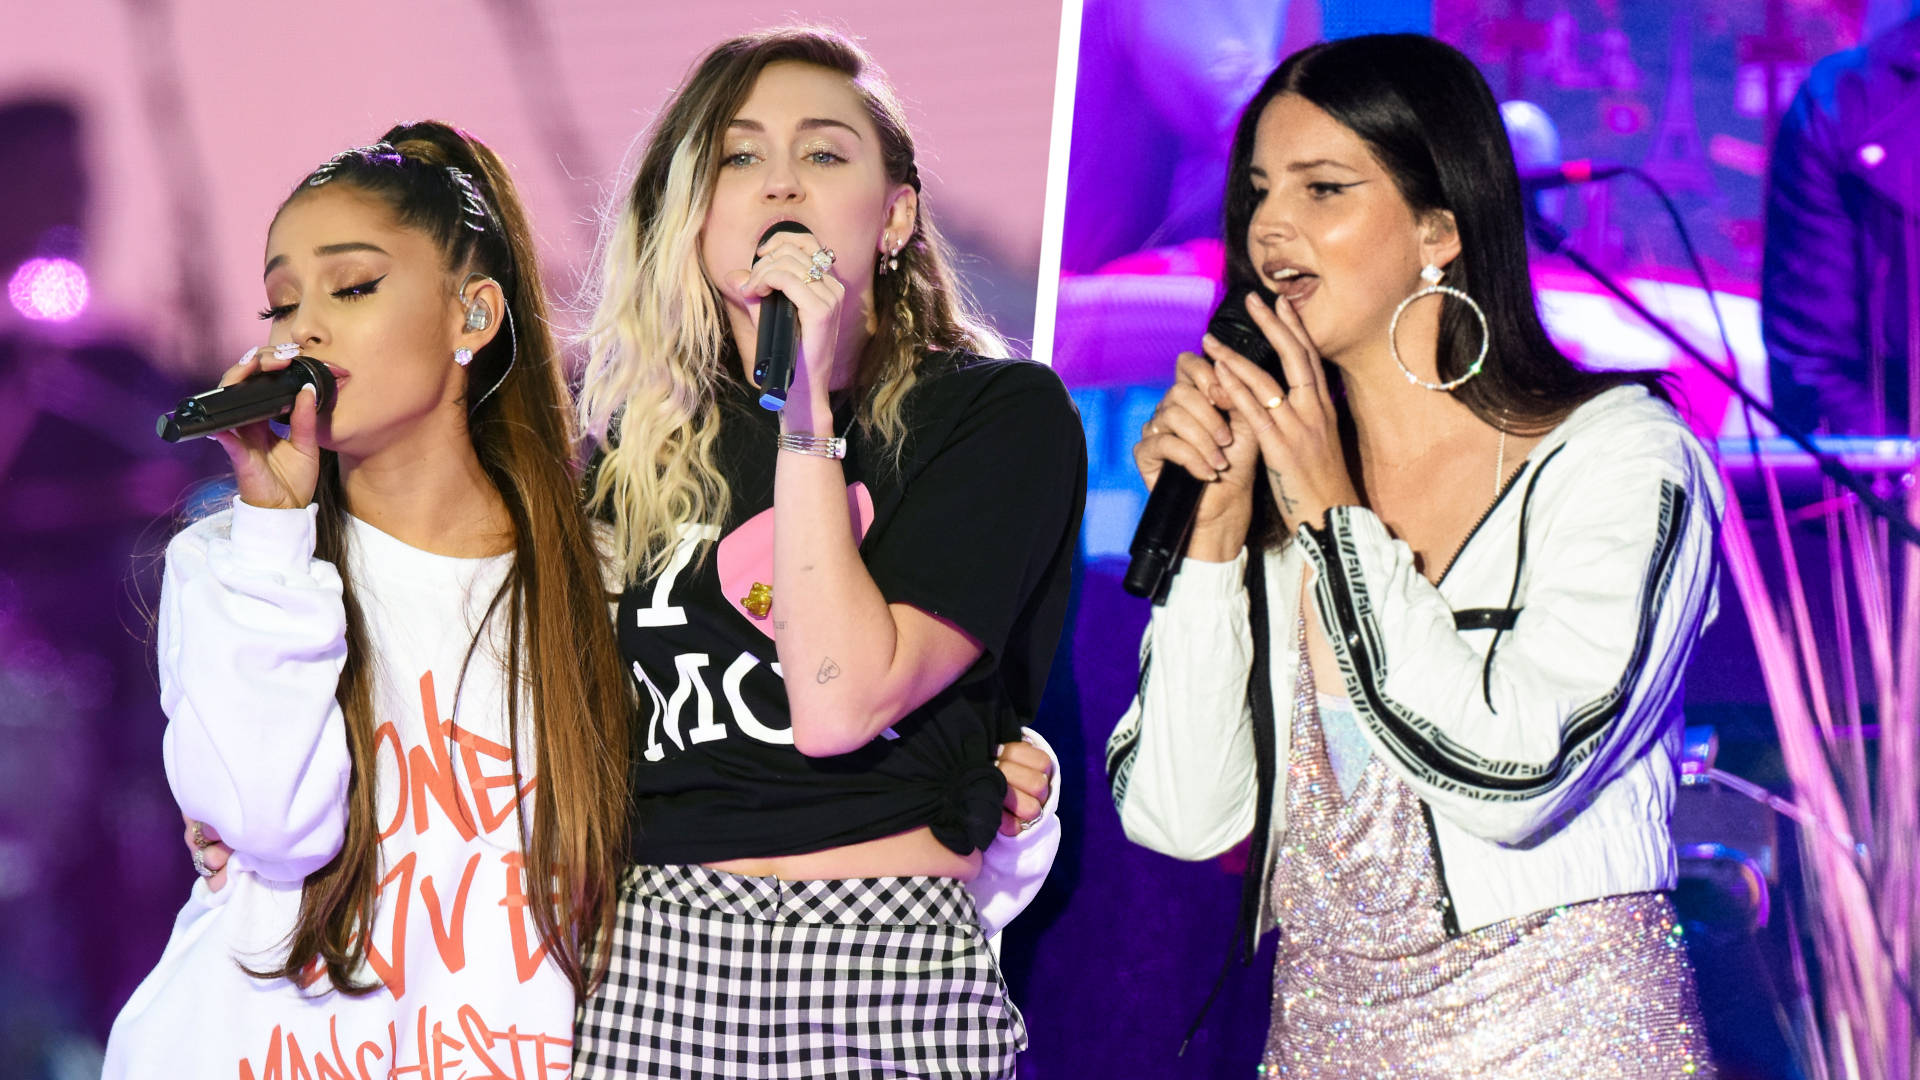 Ariana Grande Fuels Rumours She's Collaborating With Miley Cyrus And Lana Del Rey